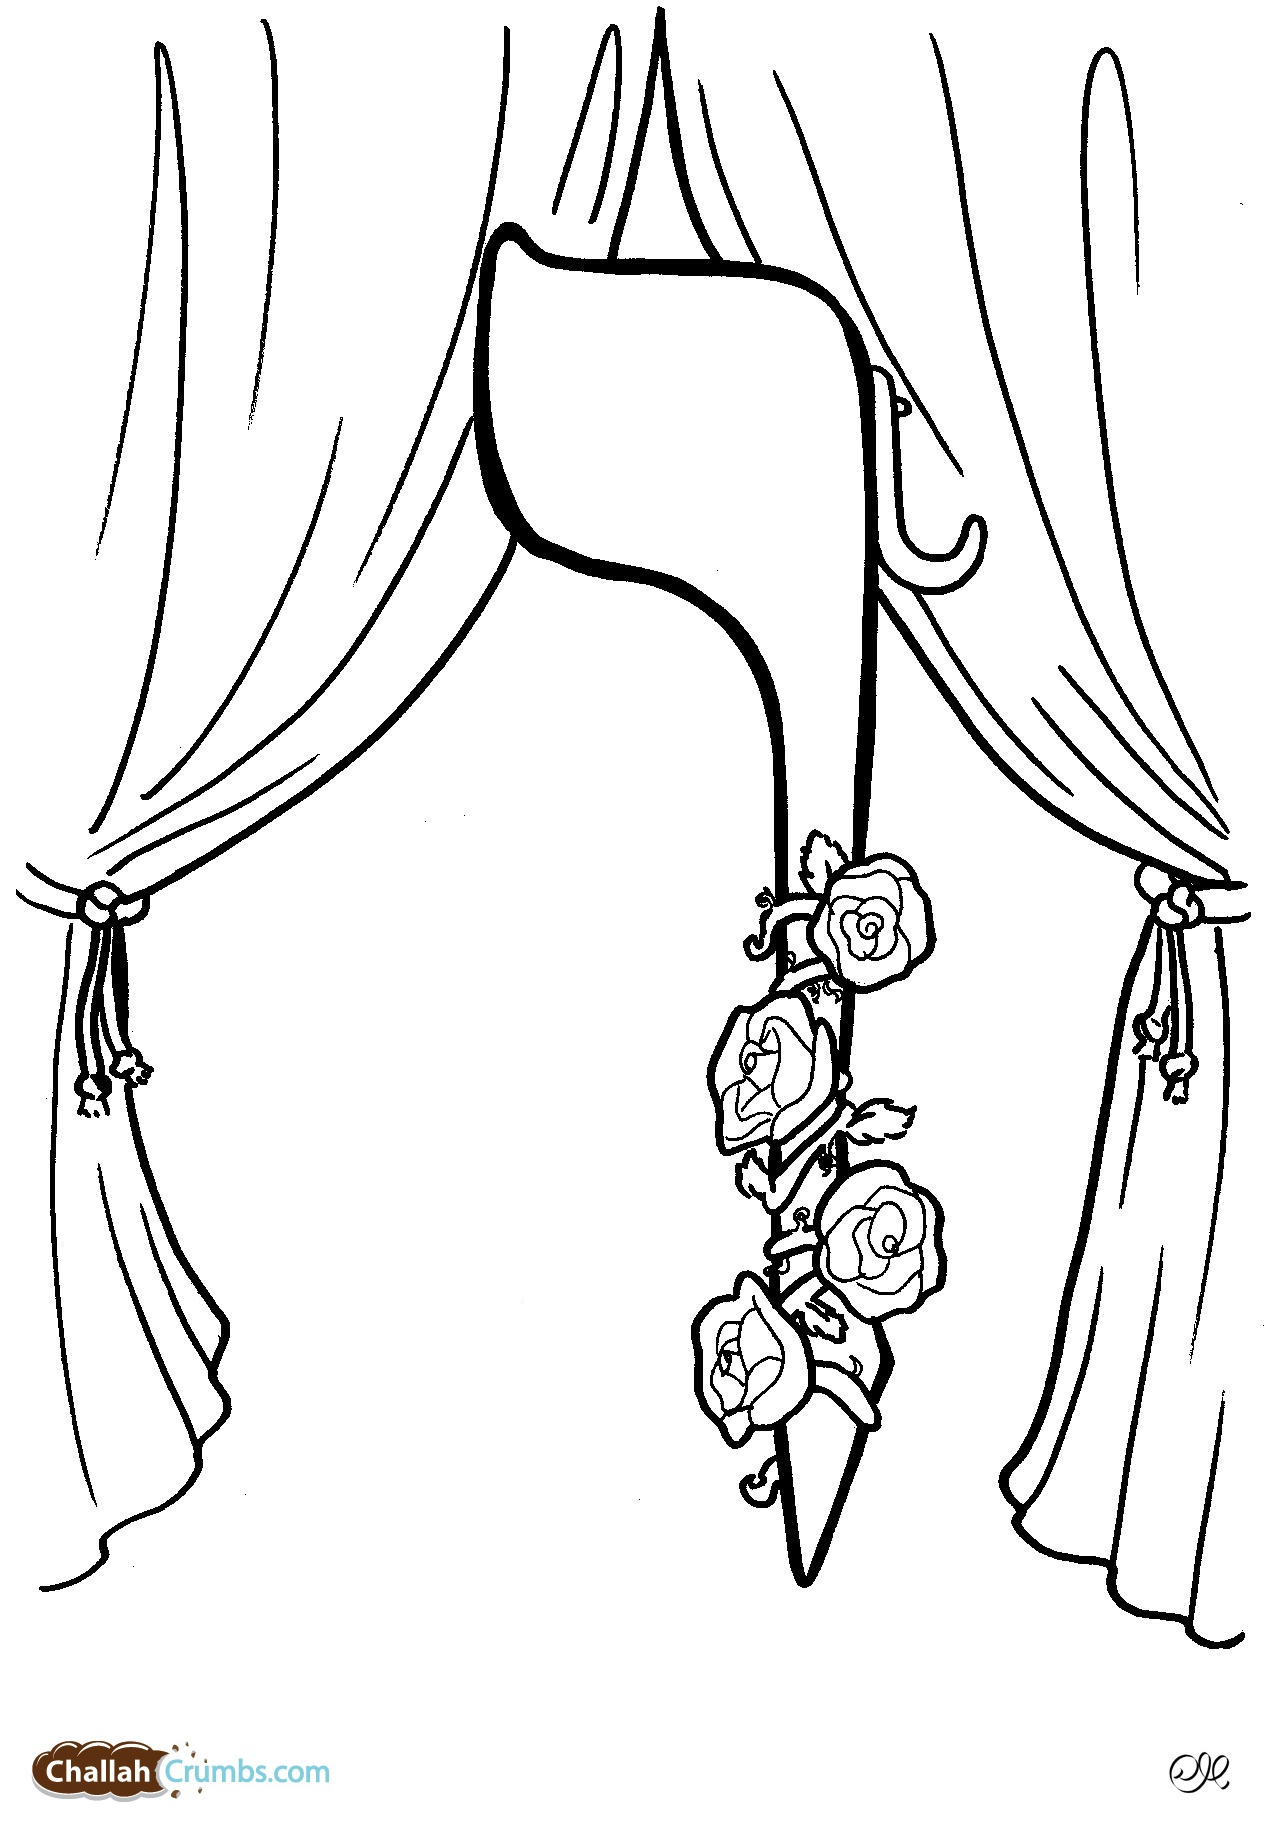 Beautiful Aleph Bet Coloring Pages Http Wwwchallahcrumbscom ...